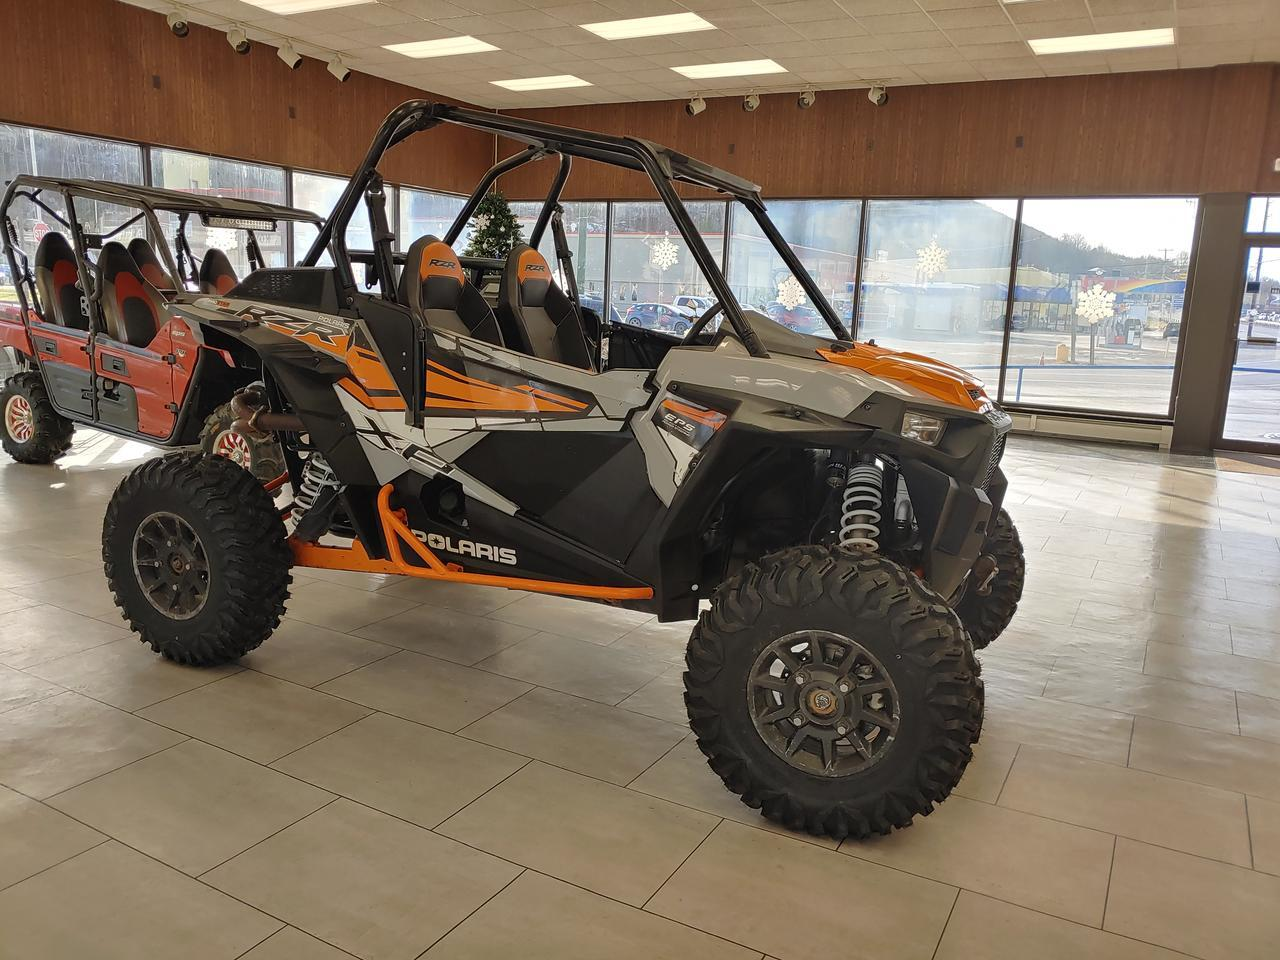 2018 POLARIS RZR XP TURBO Nesquehoning PA